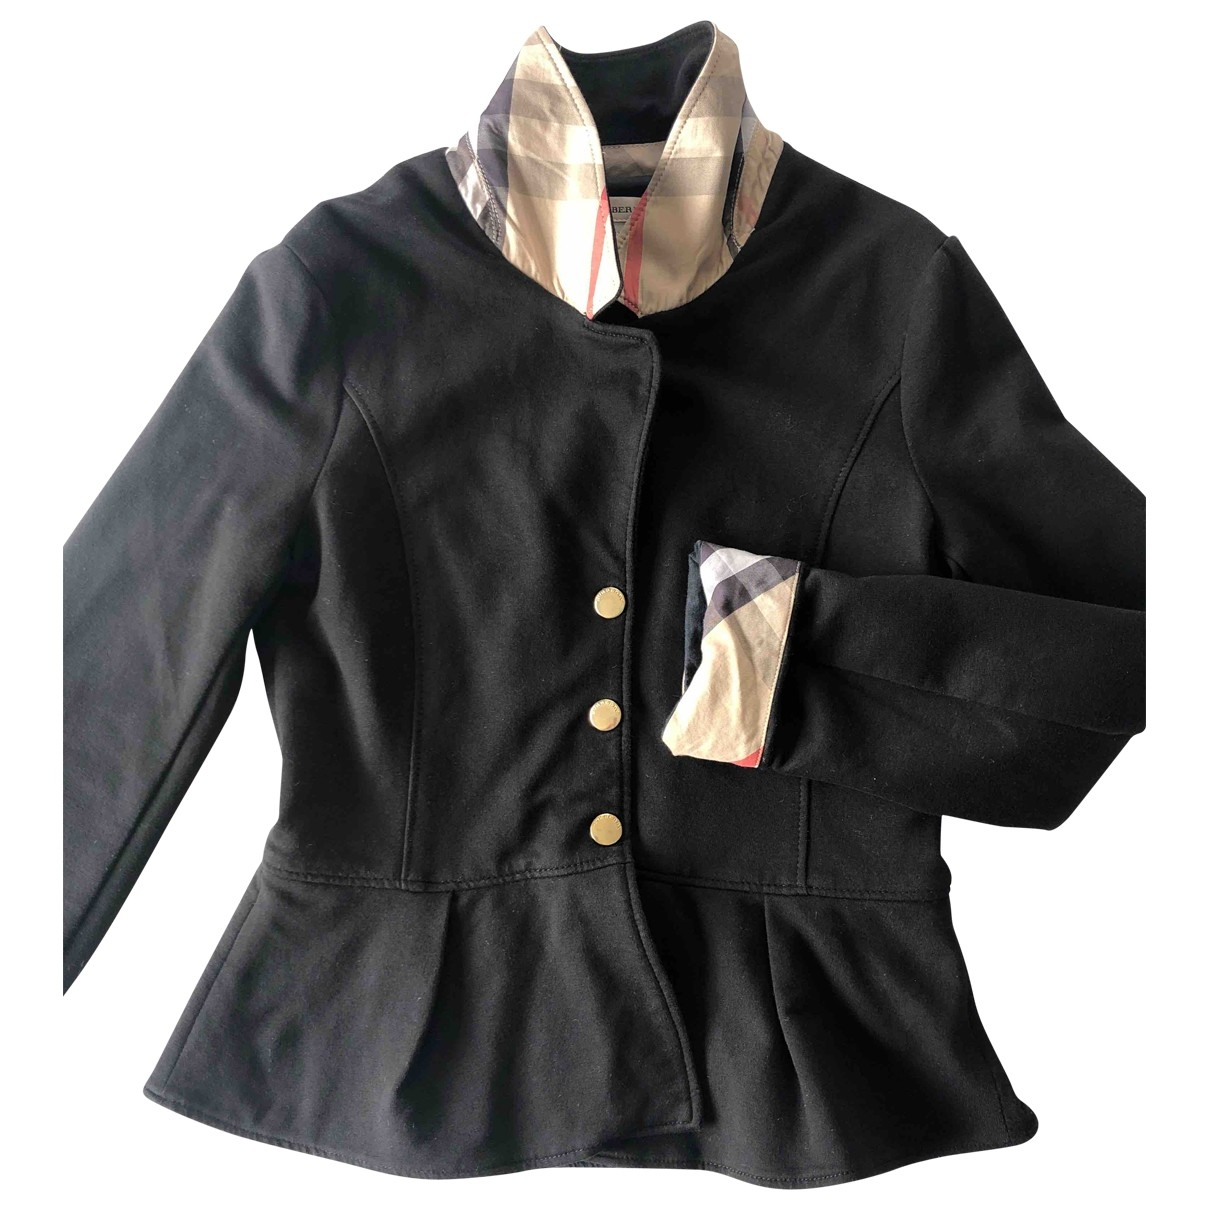 Burberry \N Black Cotton jacket & coat for Kids 10 years - up to 142cm